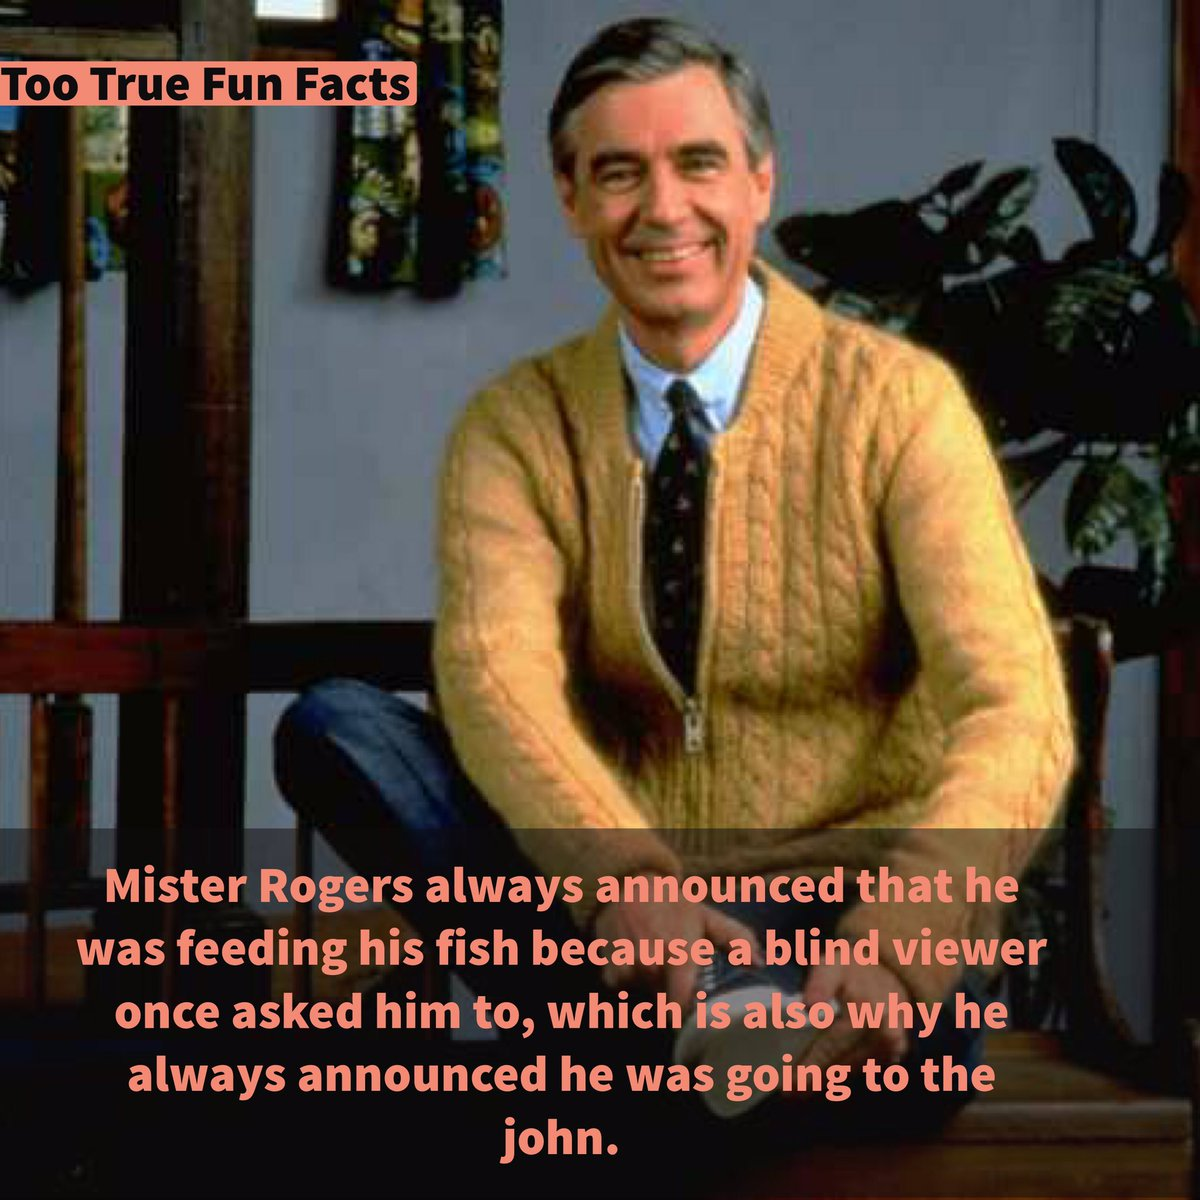 Too True Fun Facts On Twitter Mister Rogers Fun Fact Celebrity